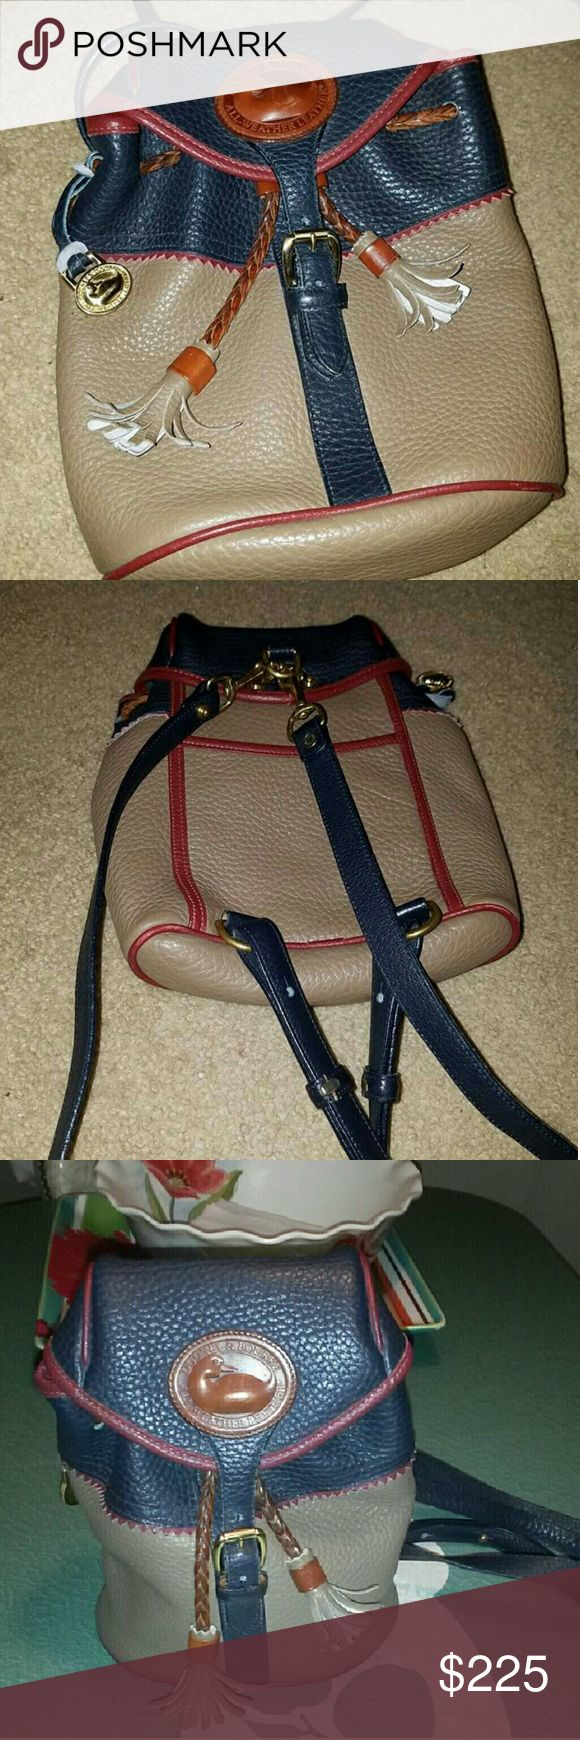 *flashSale2day* Vintage Dooney & B Teton backpack Rare and exceptionally good condition for a beautiful Vintage Teton backpack. The colors are dark Taupe & Navy with Rouge piping. No scuffs, stains. Piping in great shape, colors vibrant. Size 9.5in x 8.5in Dooney & Bourke Bags Backpacks